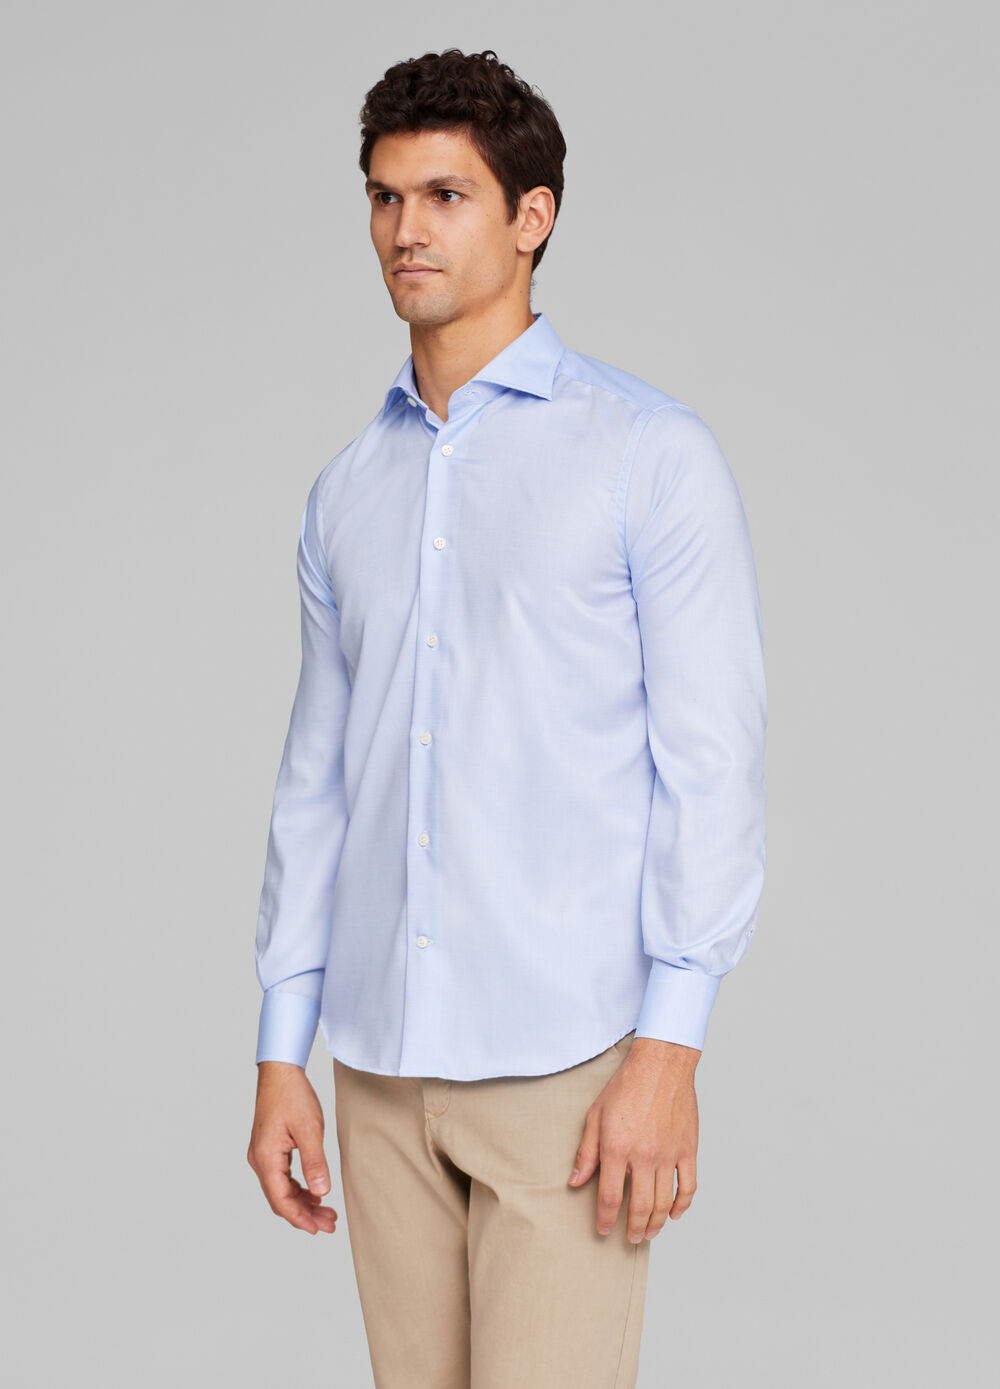 Slim fit formal shirt in 100% cotton